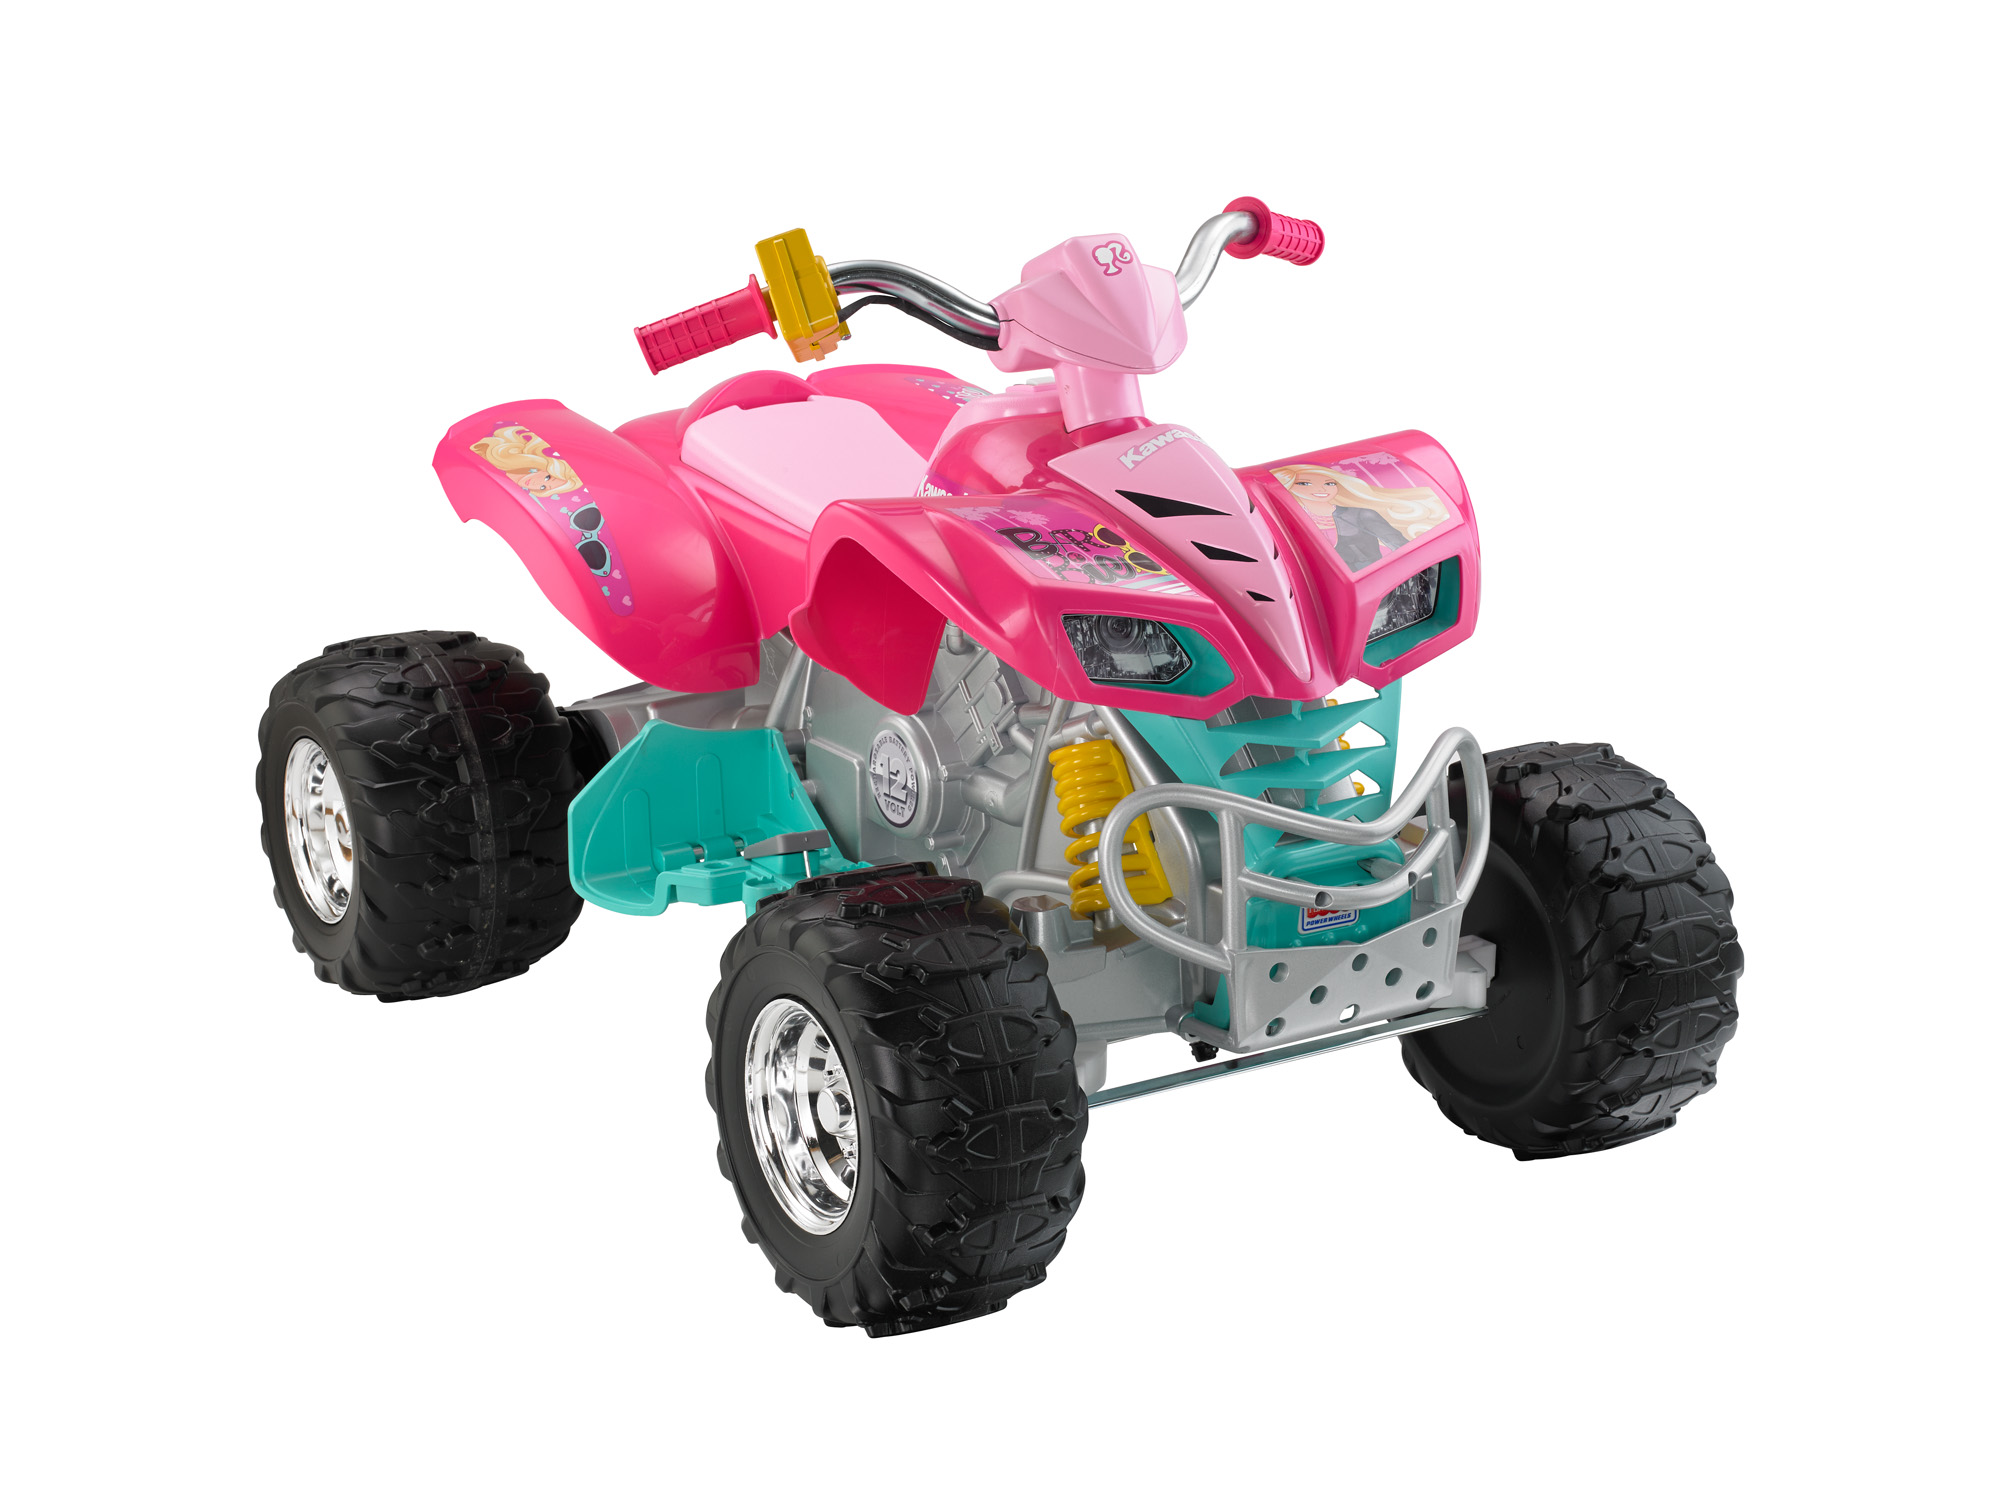 kids power wheels barbie kfx 12 volt battery powered ride on quad atv 12v toy ebay. Black Bedroom Furniture Sets. Home Design Ideas